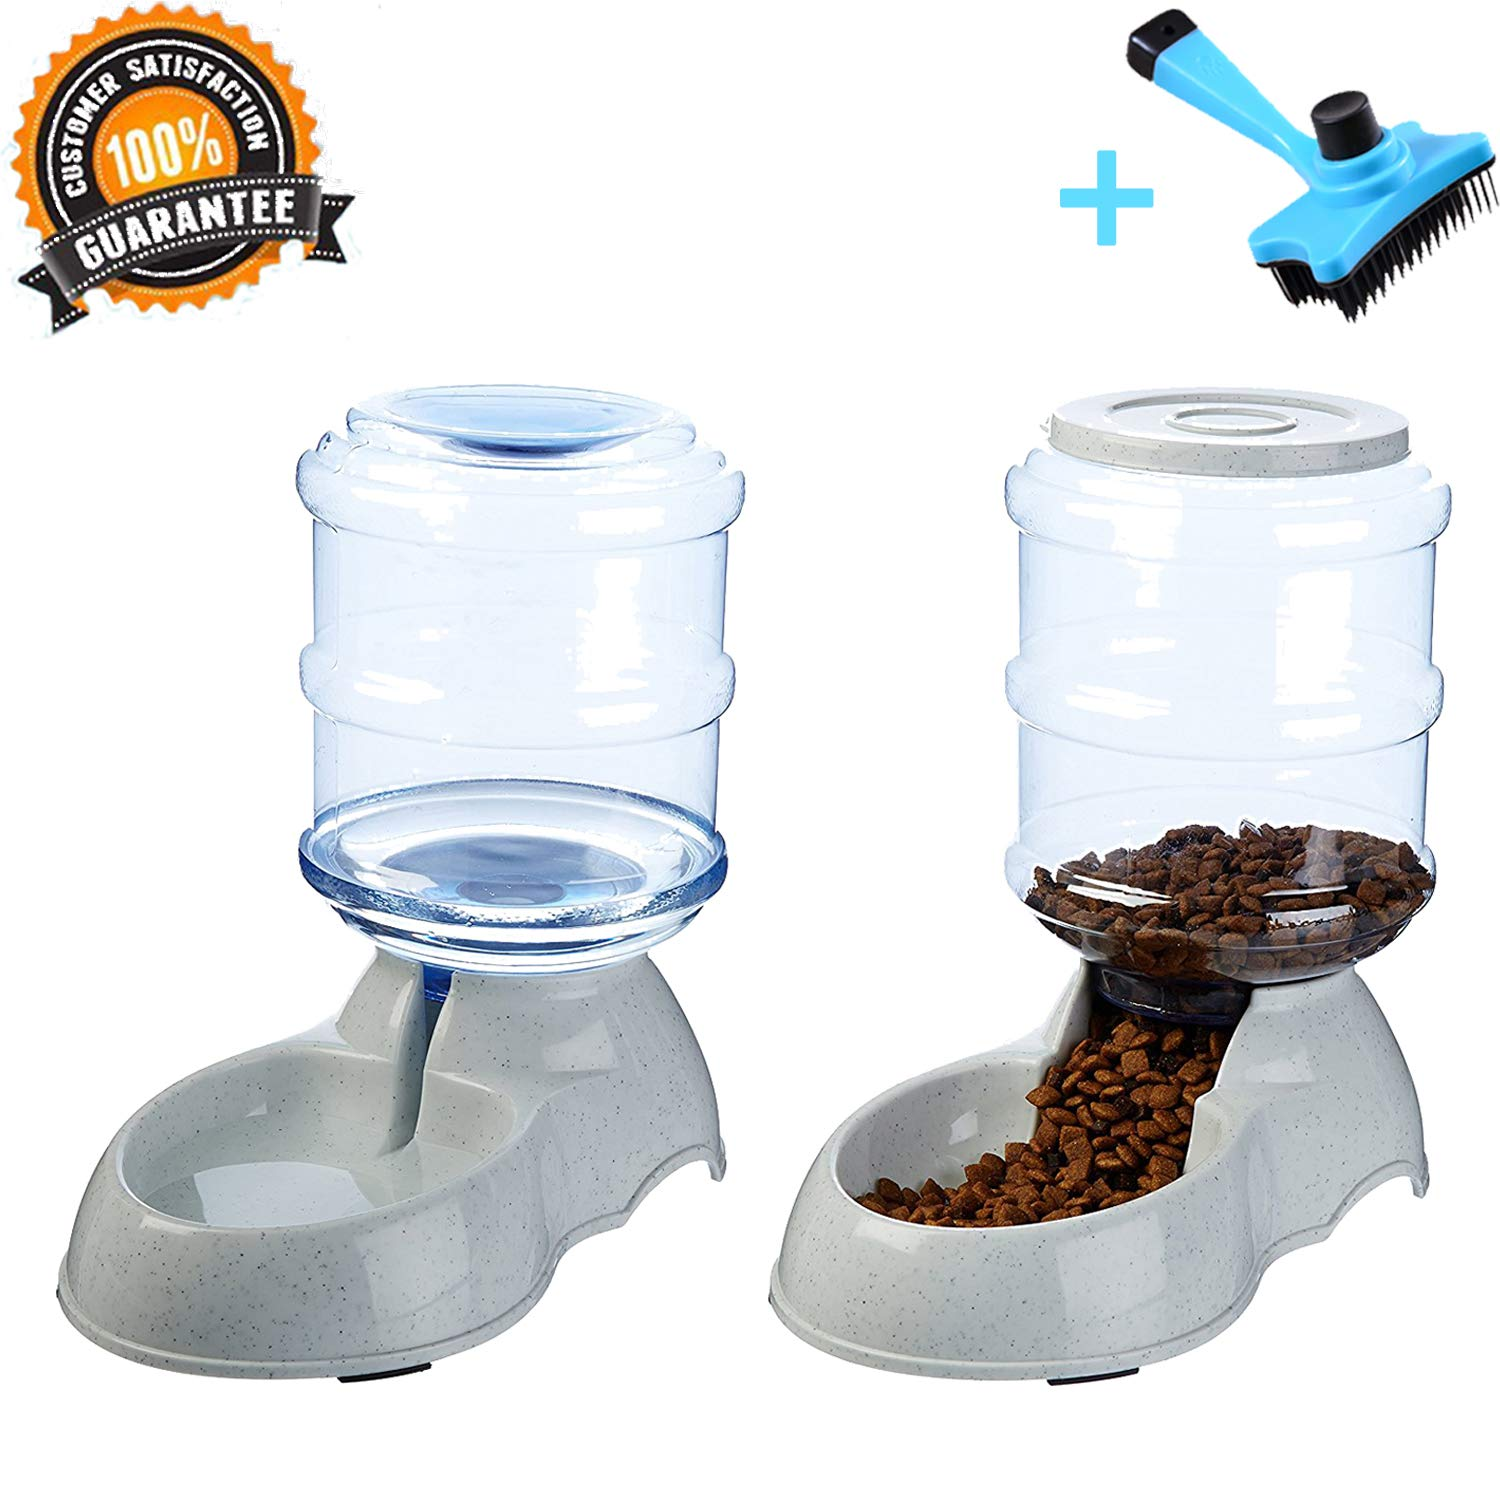 Ancaixin Automatic Cat Feeder and Water Dispenser in Set with Slicker Brush Gift for Small Large Dog Pets Puppy Kitten Big Capacity 1 Gallon x 2 by Ancaixin